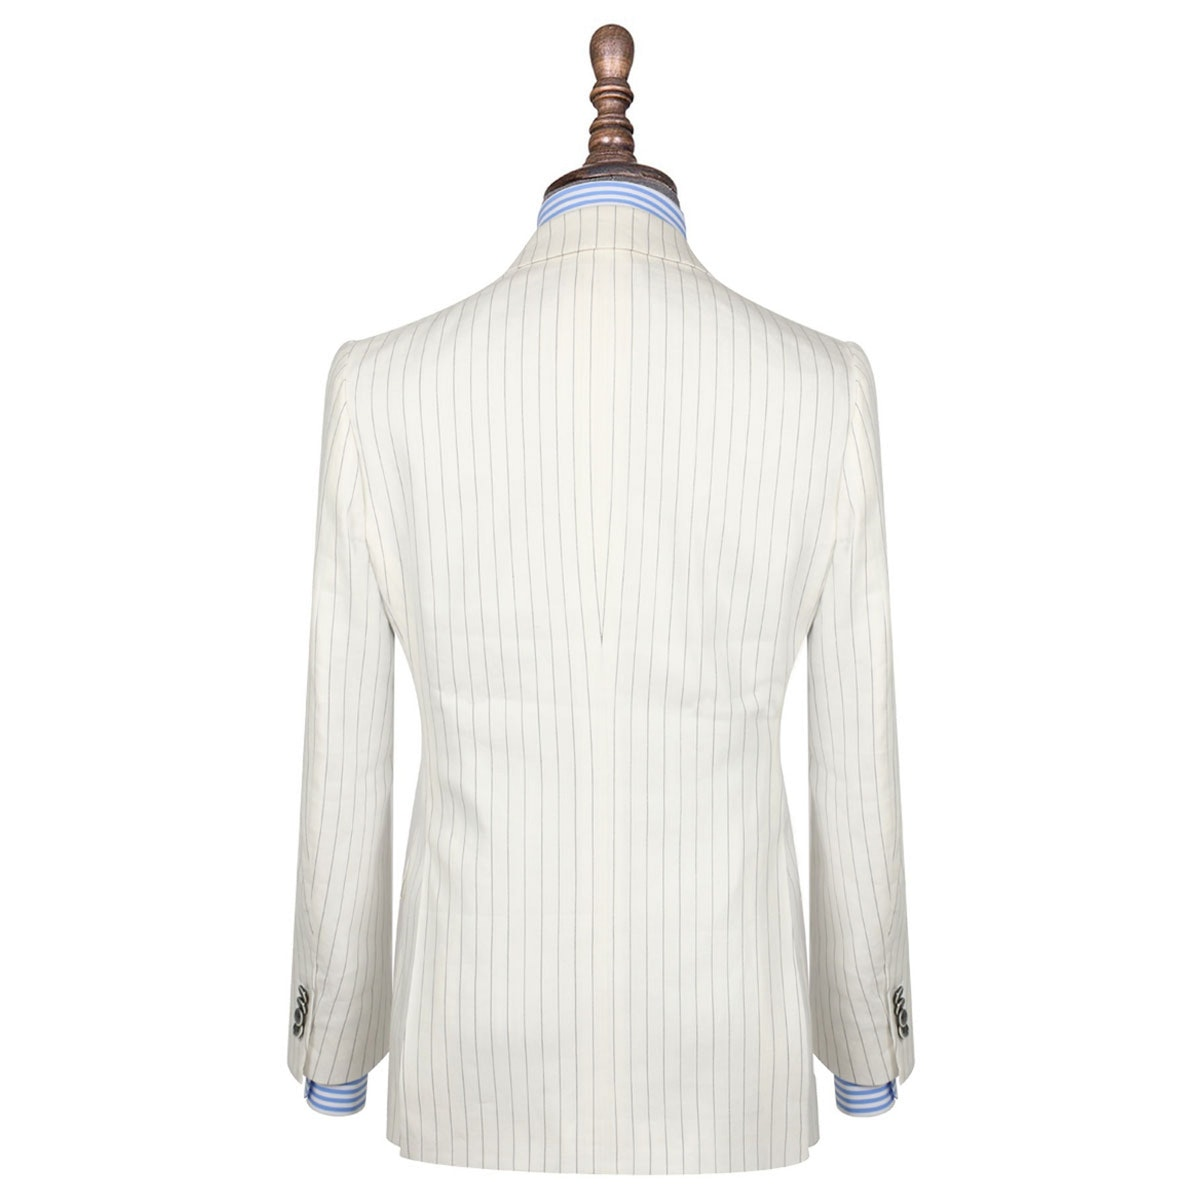 InStitchu Collection The Carraway White With Black Pinstripe Linen Jacket